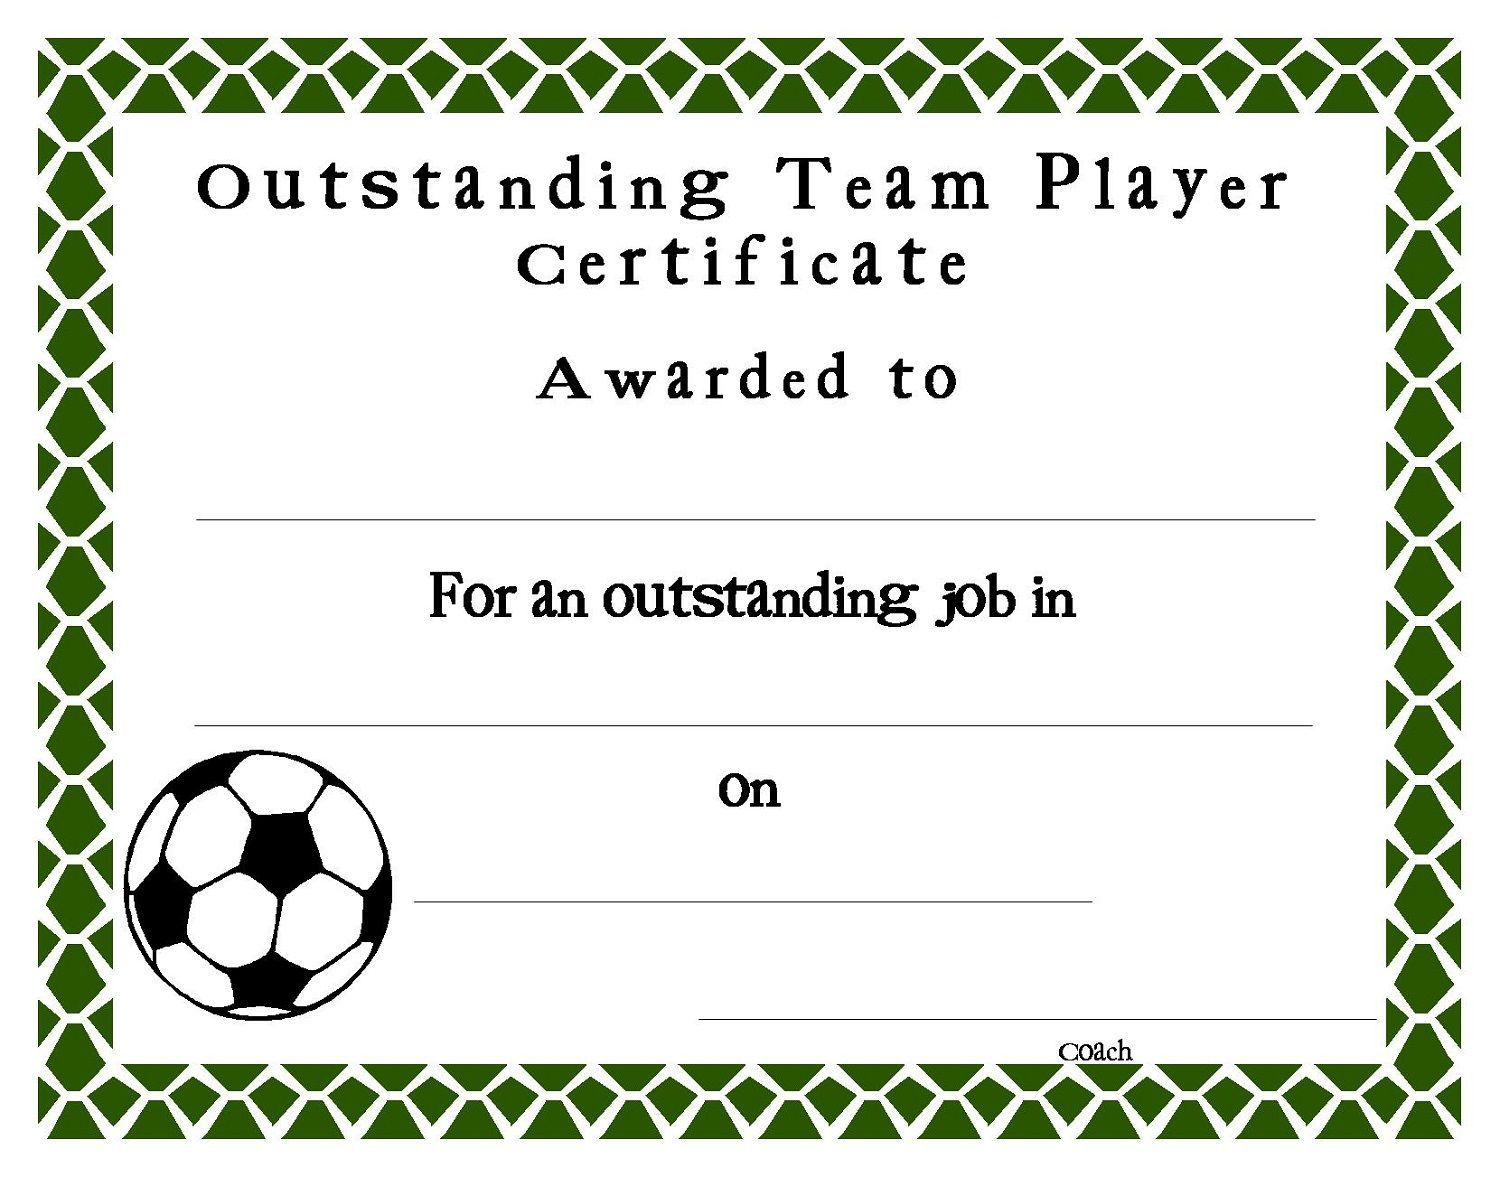 Soccer Certificate Templates Blank K5 Worksheets Within Soccer Certificate Templates For Word Cal Soccer Awards Award Template Awards Certificates Template Player of the game certificate